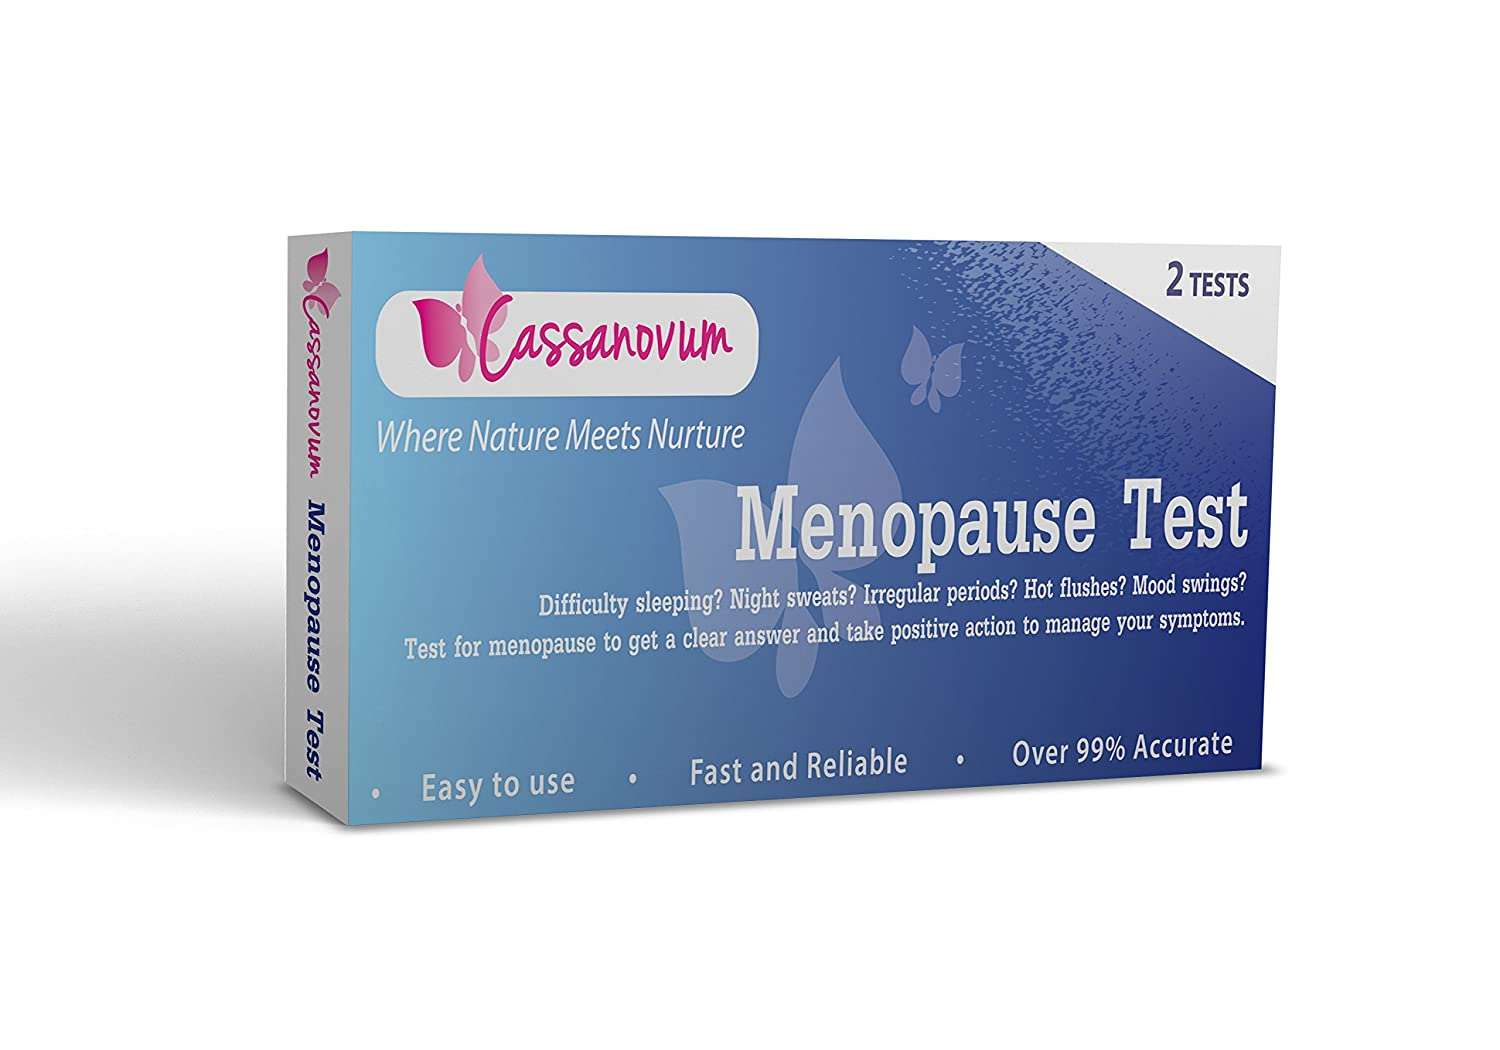 Menopause Test (Pack of 2 Tests) - Test and be sure!